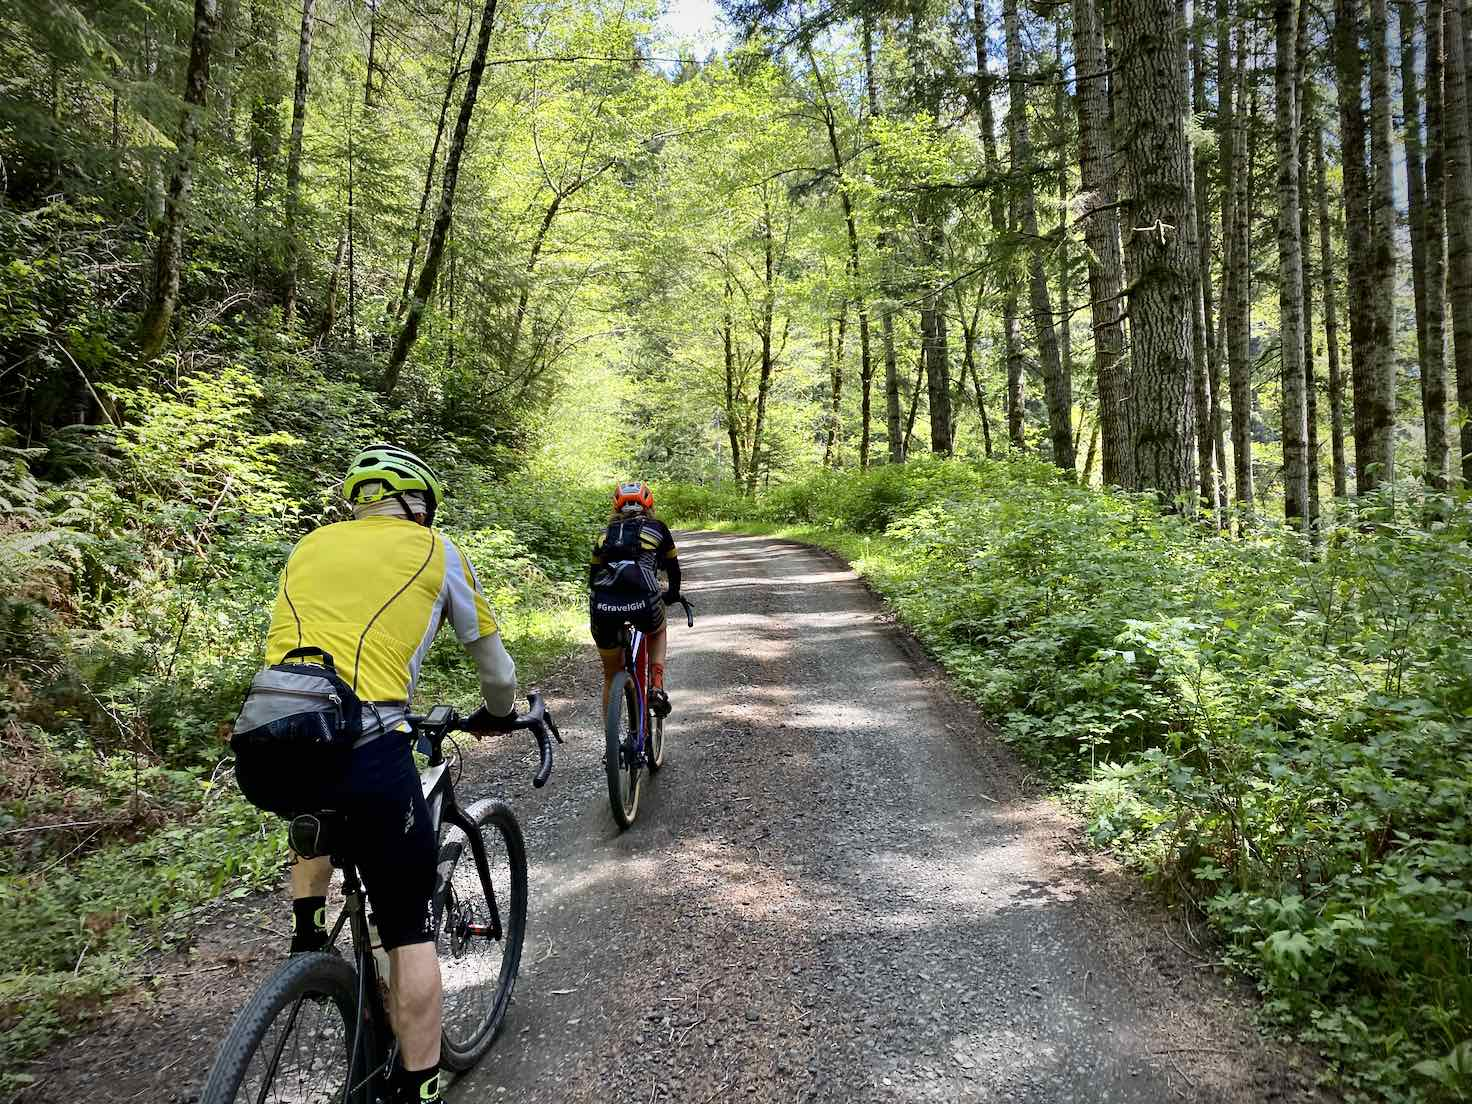 Gravel Girl and buddy riding the gravel portion of Nf 31 in the deep, green forest.